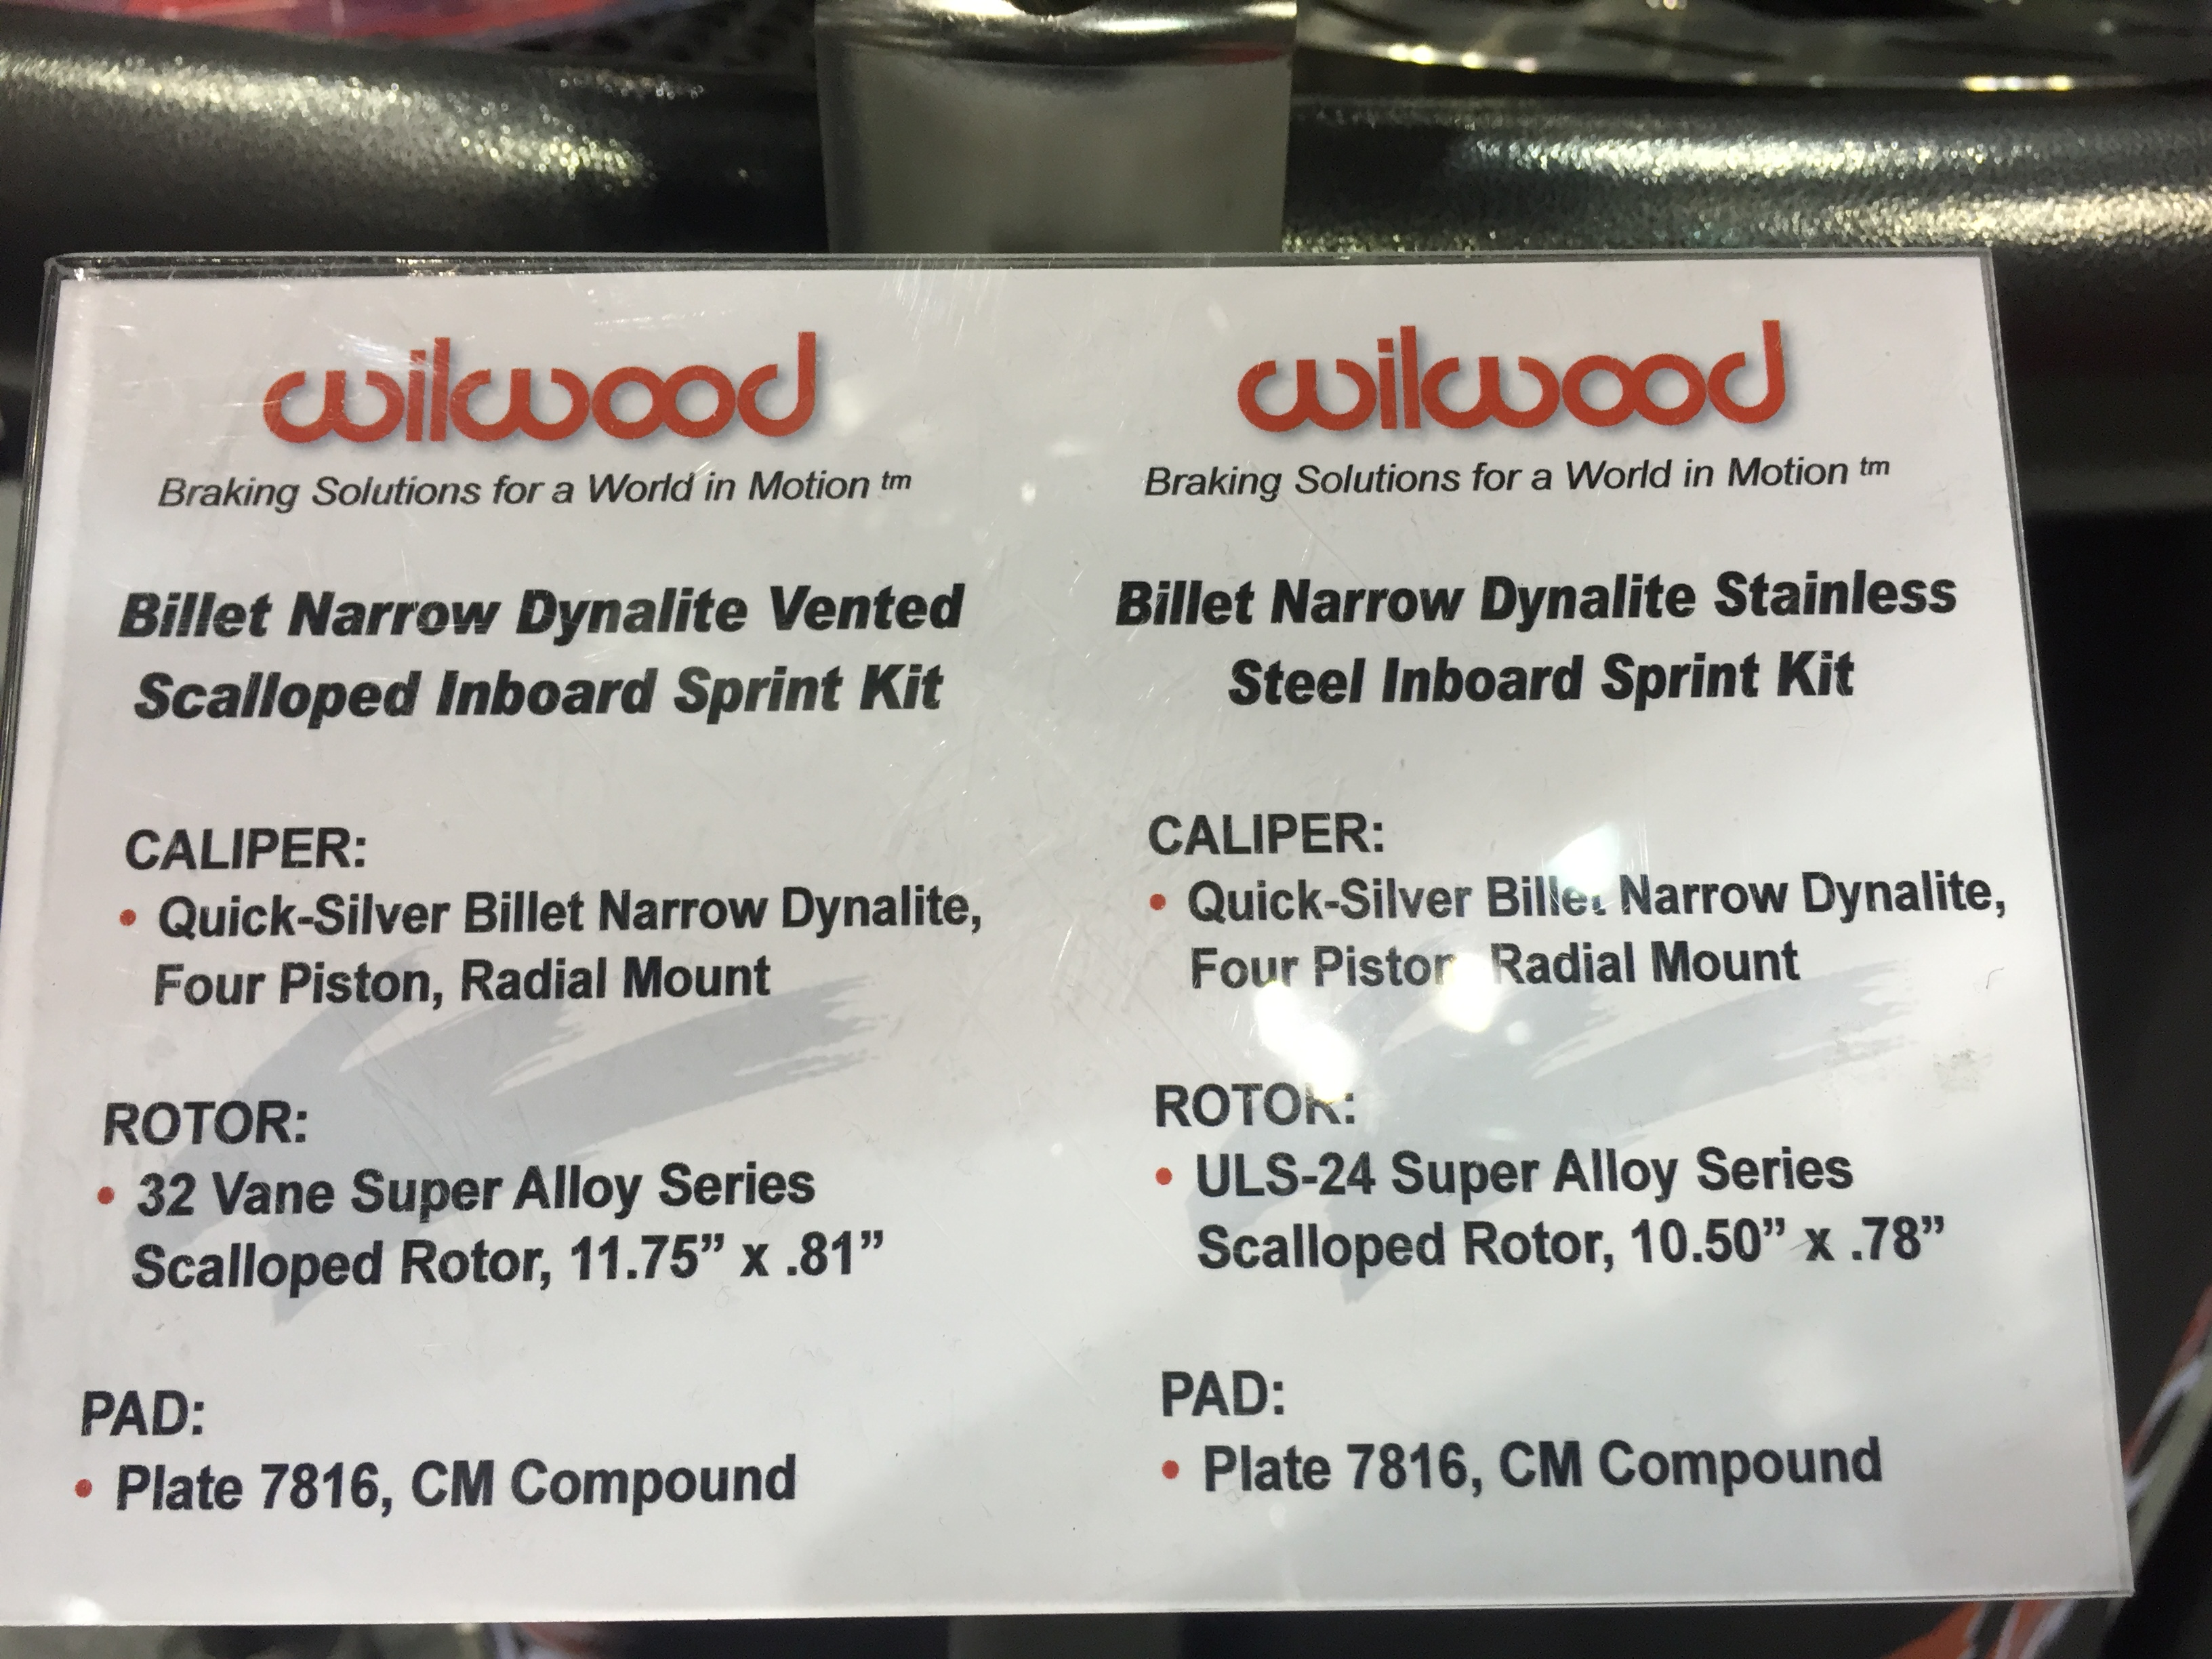 PRI: Wilwood Inboard Rear Brakes – Build Race Party